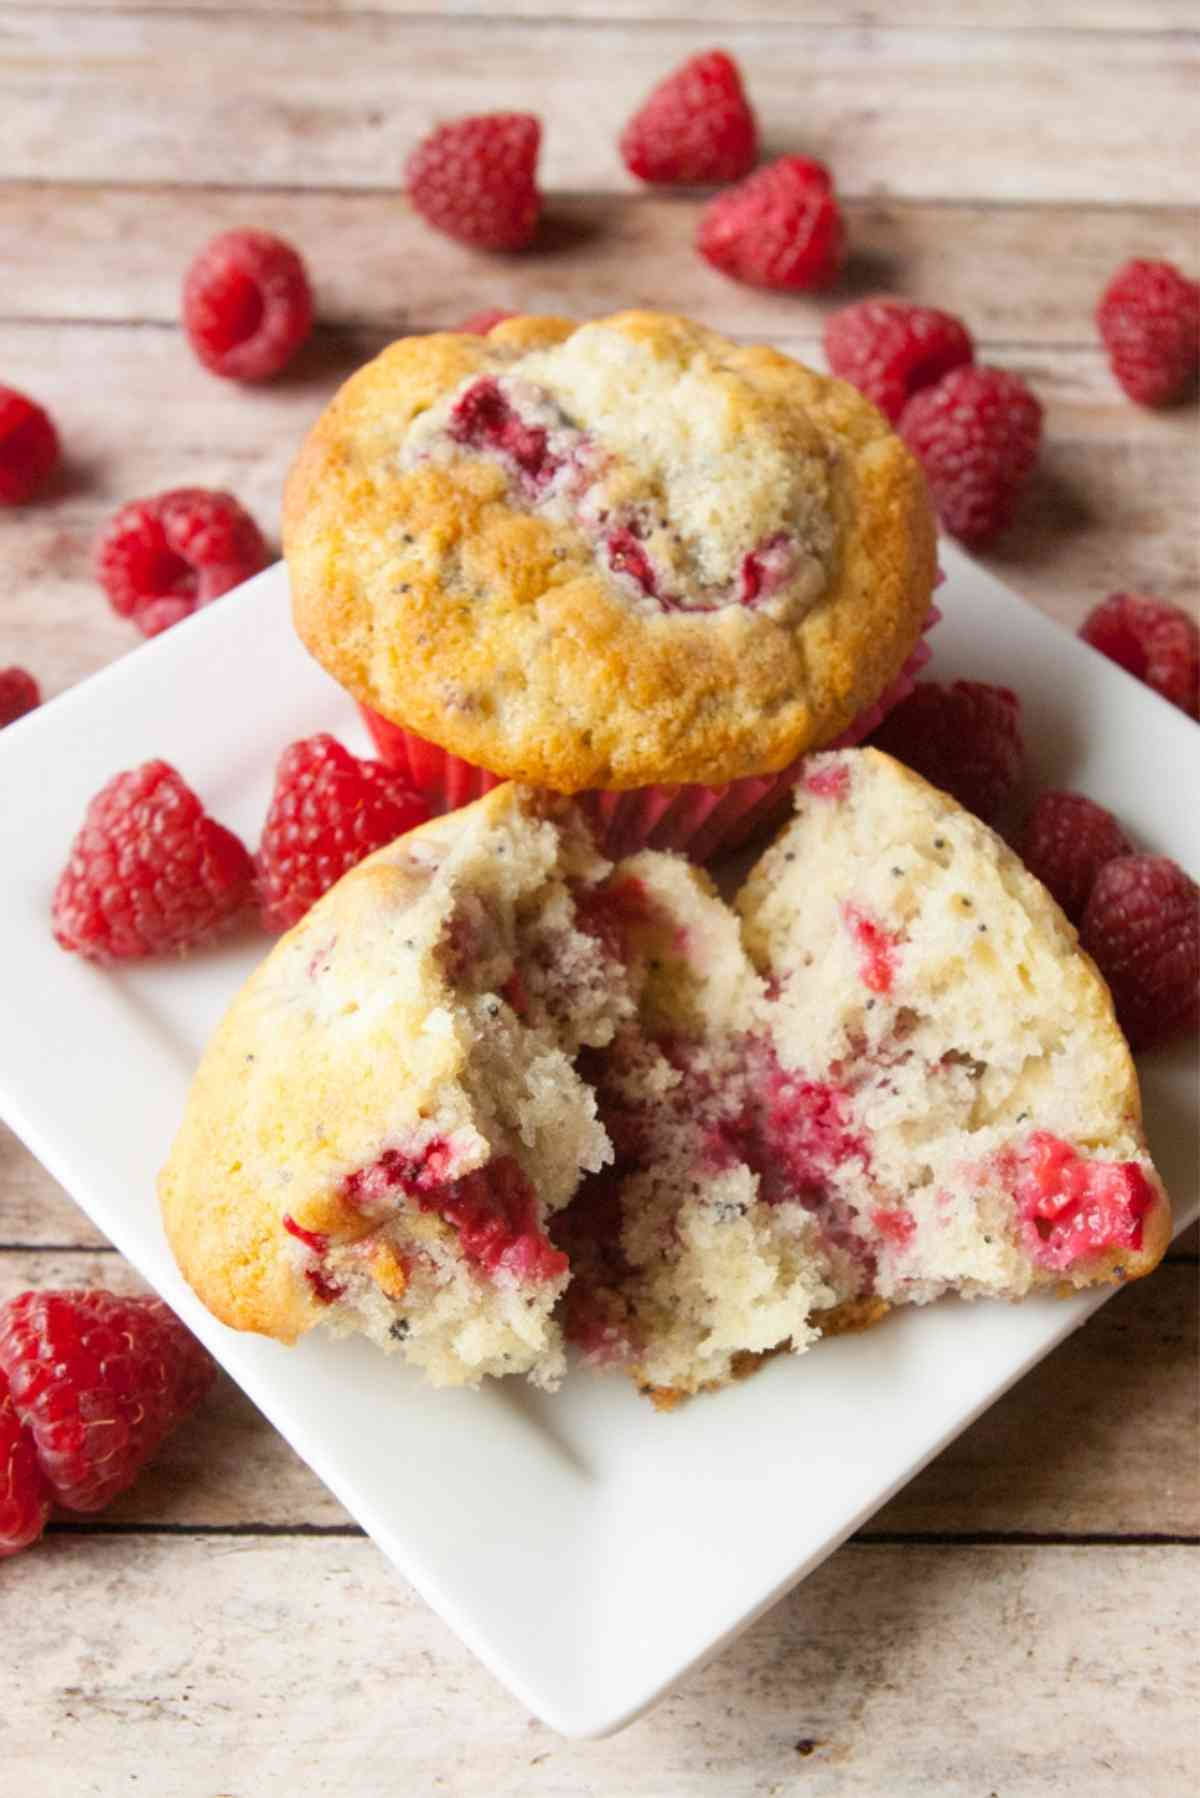 Warm raspberry muffins on a plate surrounded by fresh raspberries.